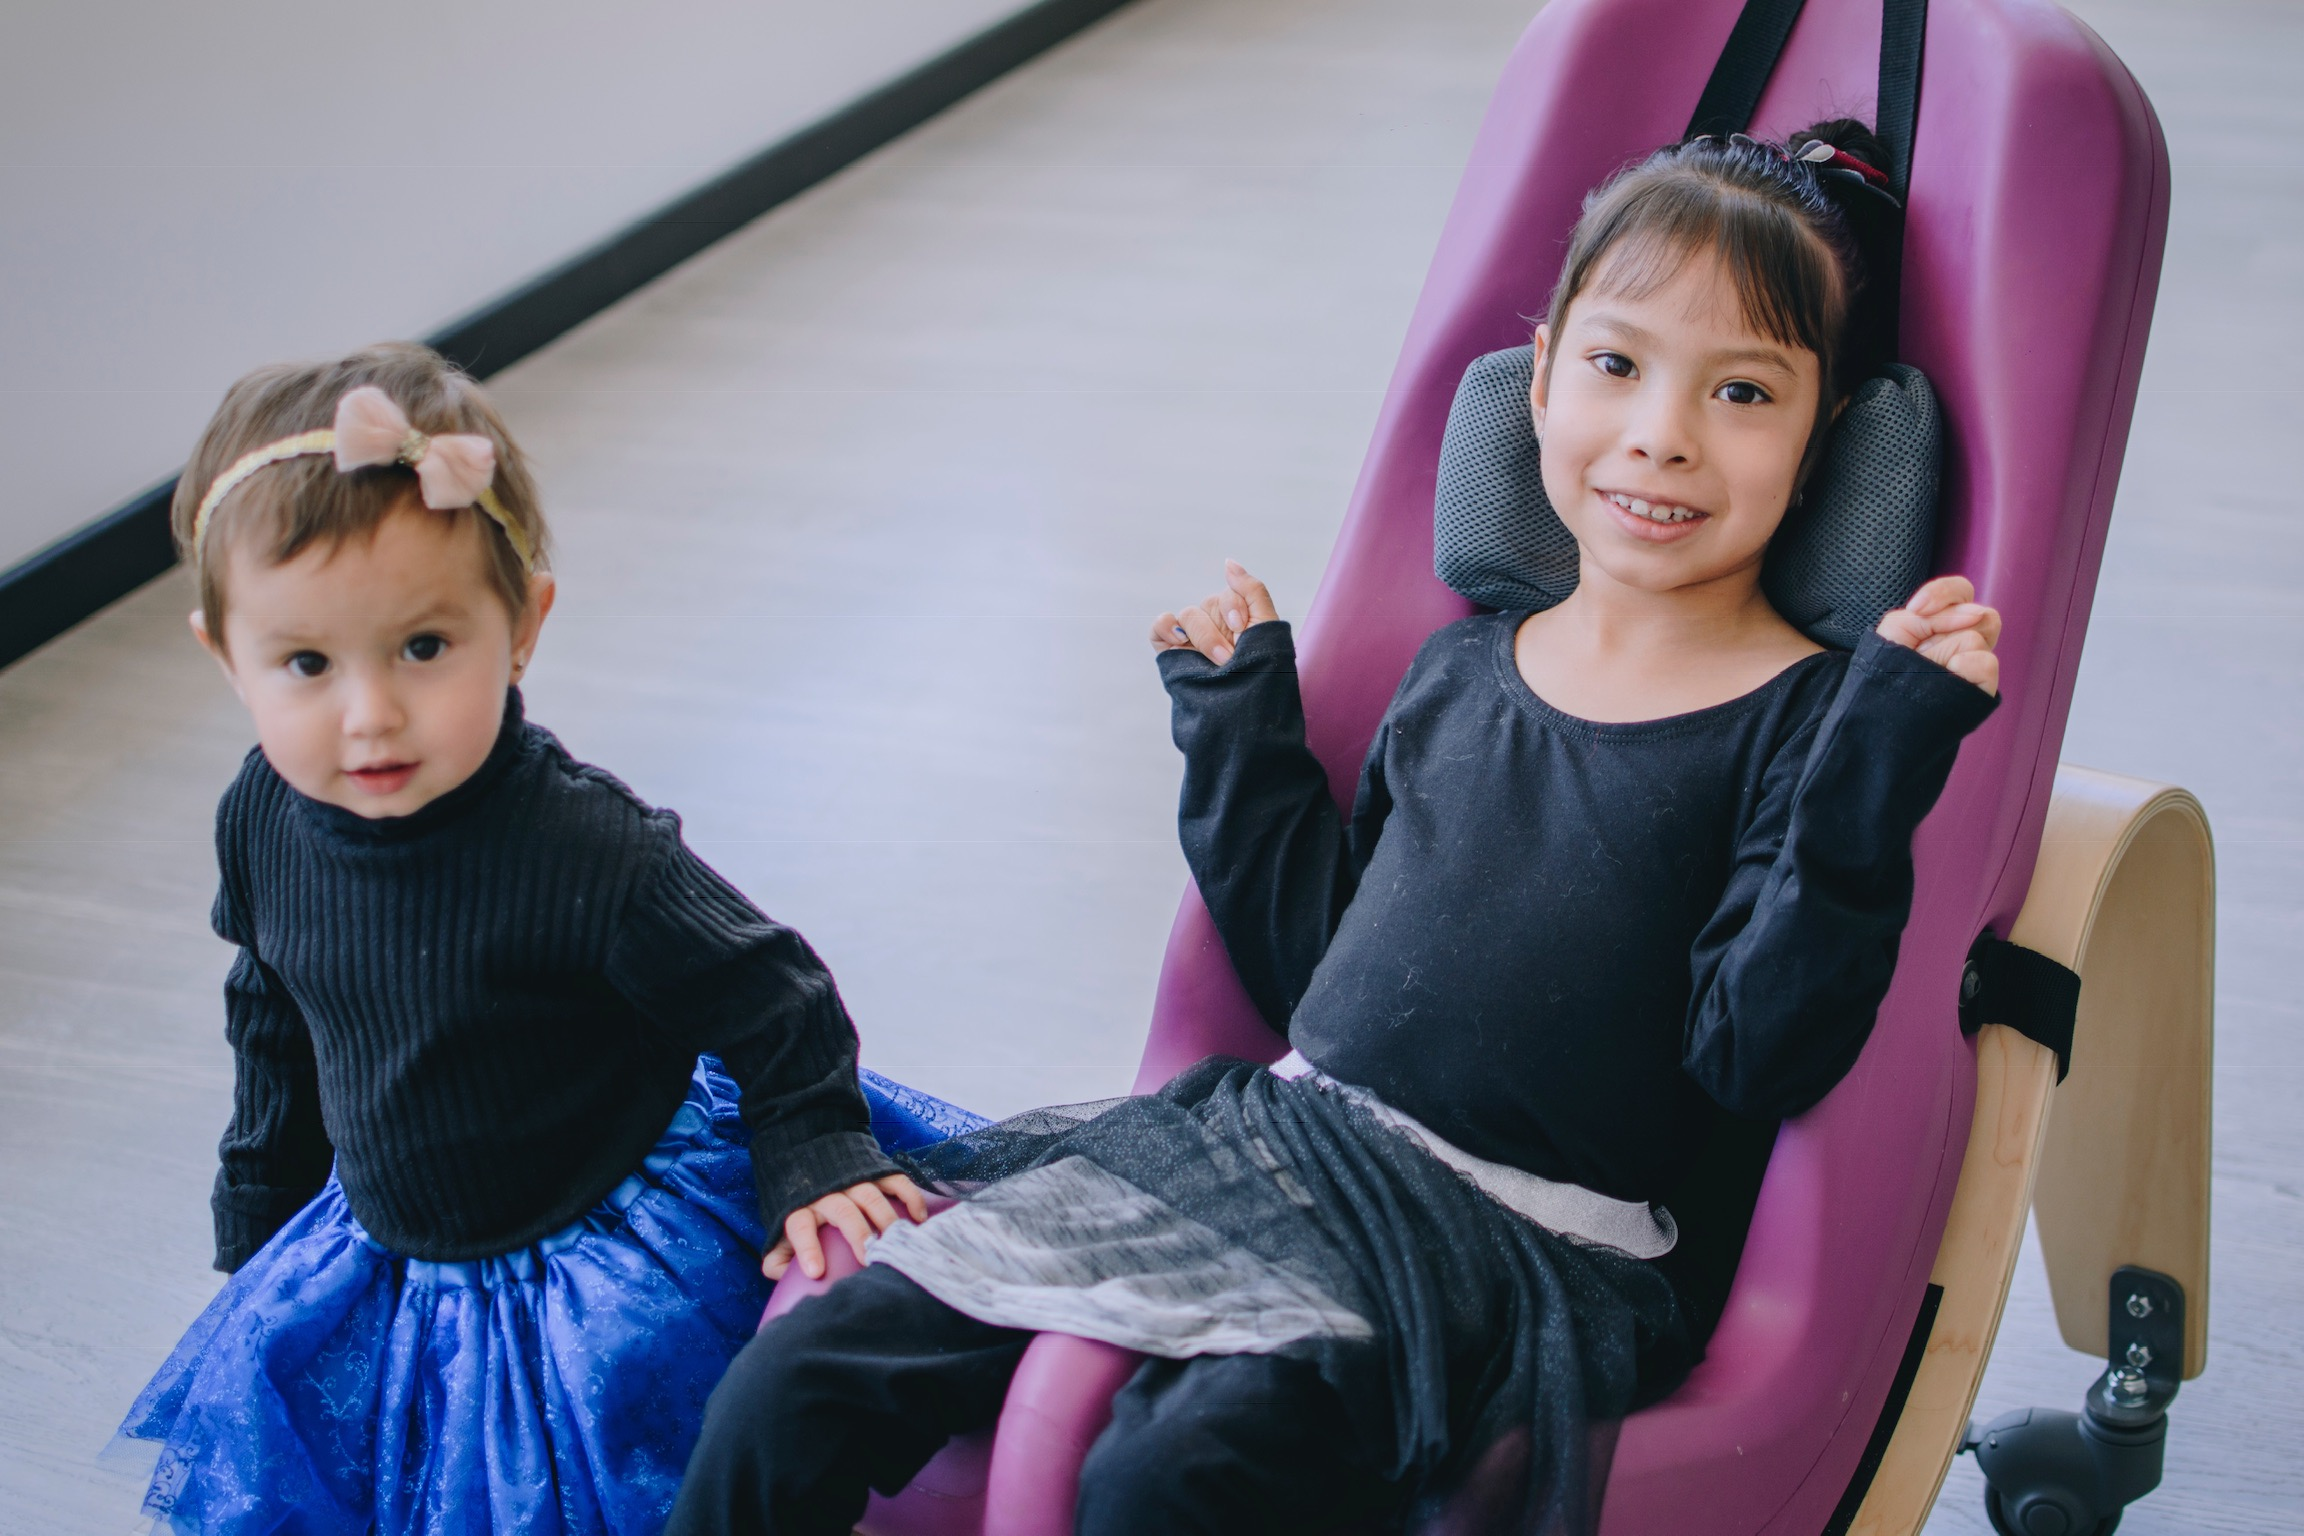 All children —including those with birth defects & special needs— have hopes & dreams, & require A LOT of support. Here's 1 dream we want to support NOW.